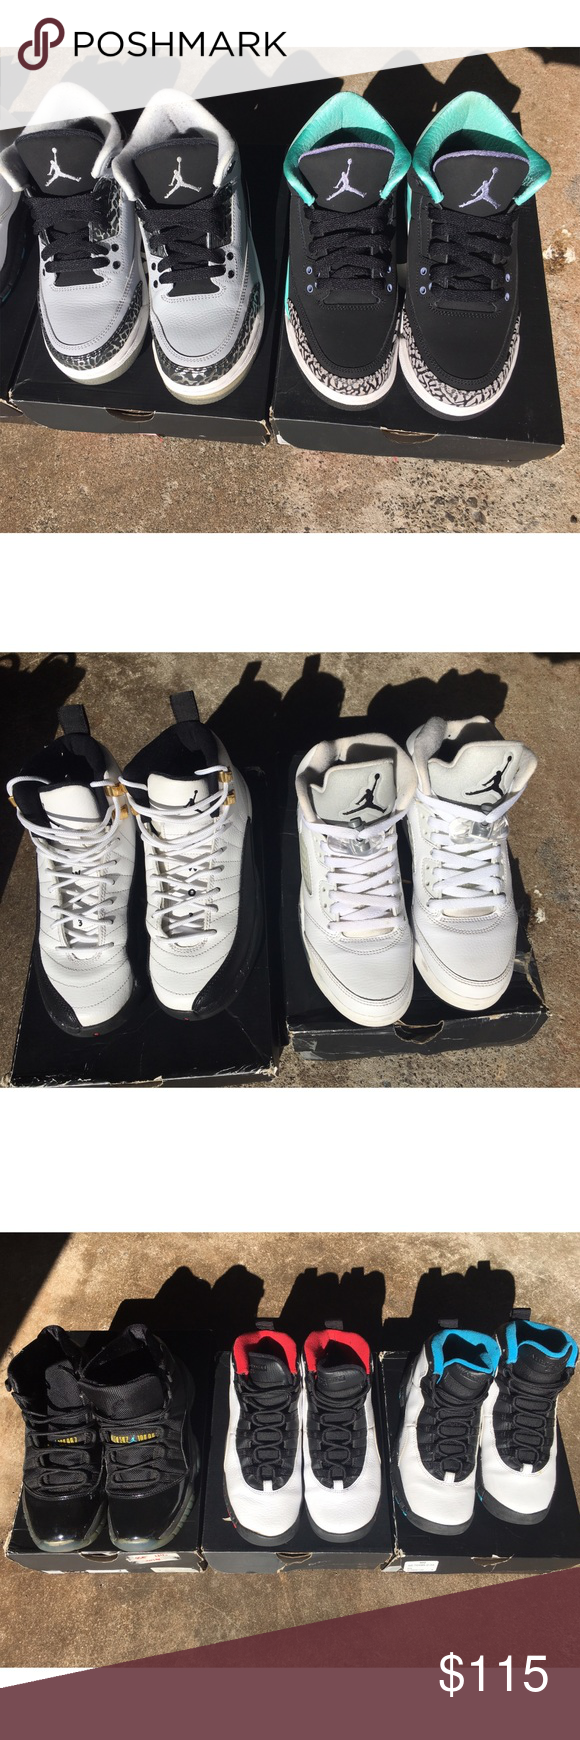 10c58bae666fe2 GS AIR JORDANS Size 4youth Gamma Blue 11 -  50 Need repair on front sole  Mint